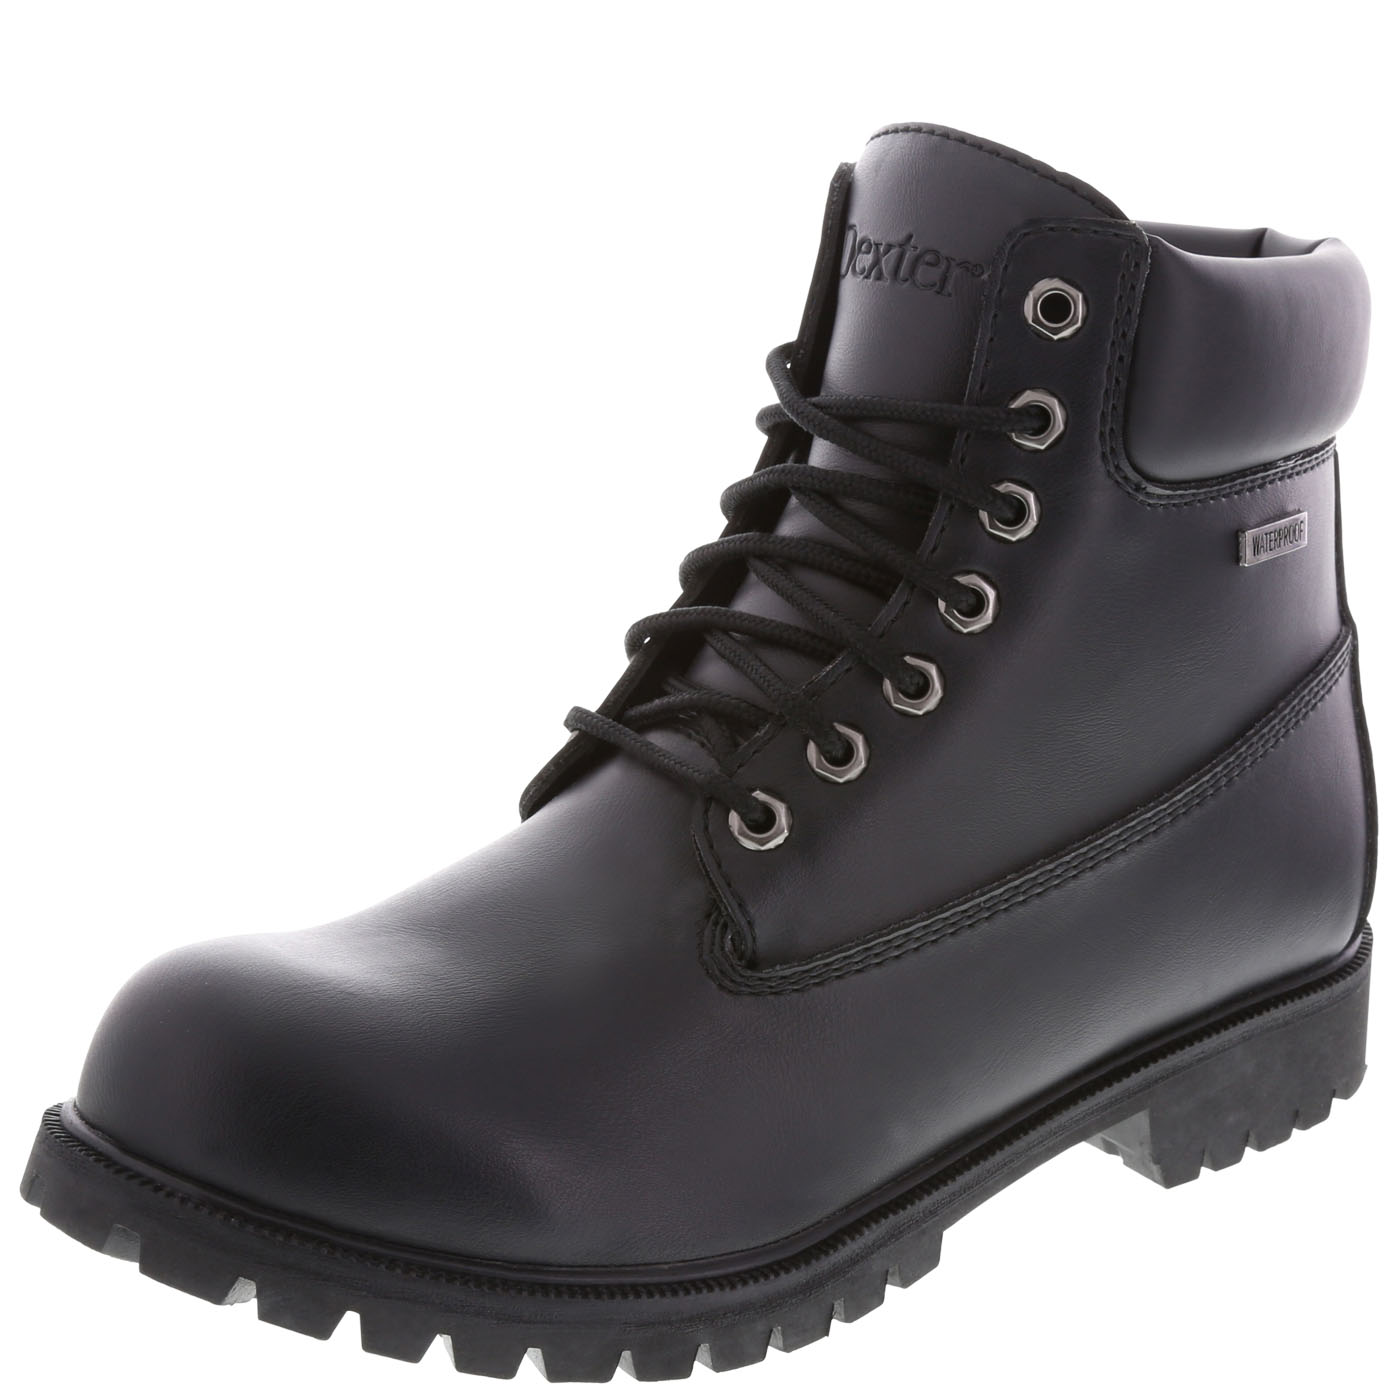 Men Black Boots fb1dpn8t